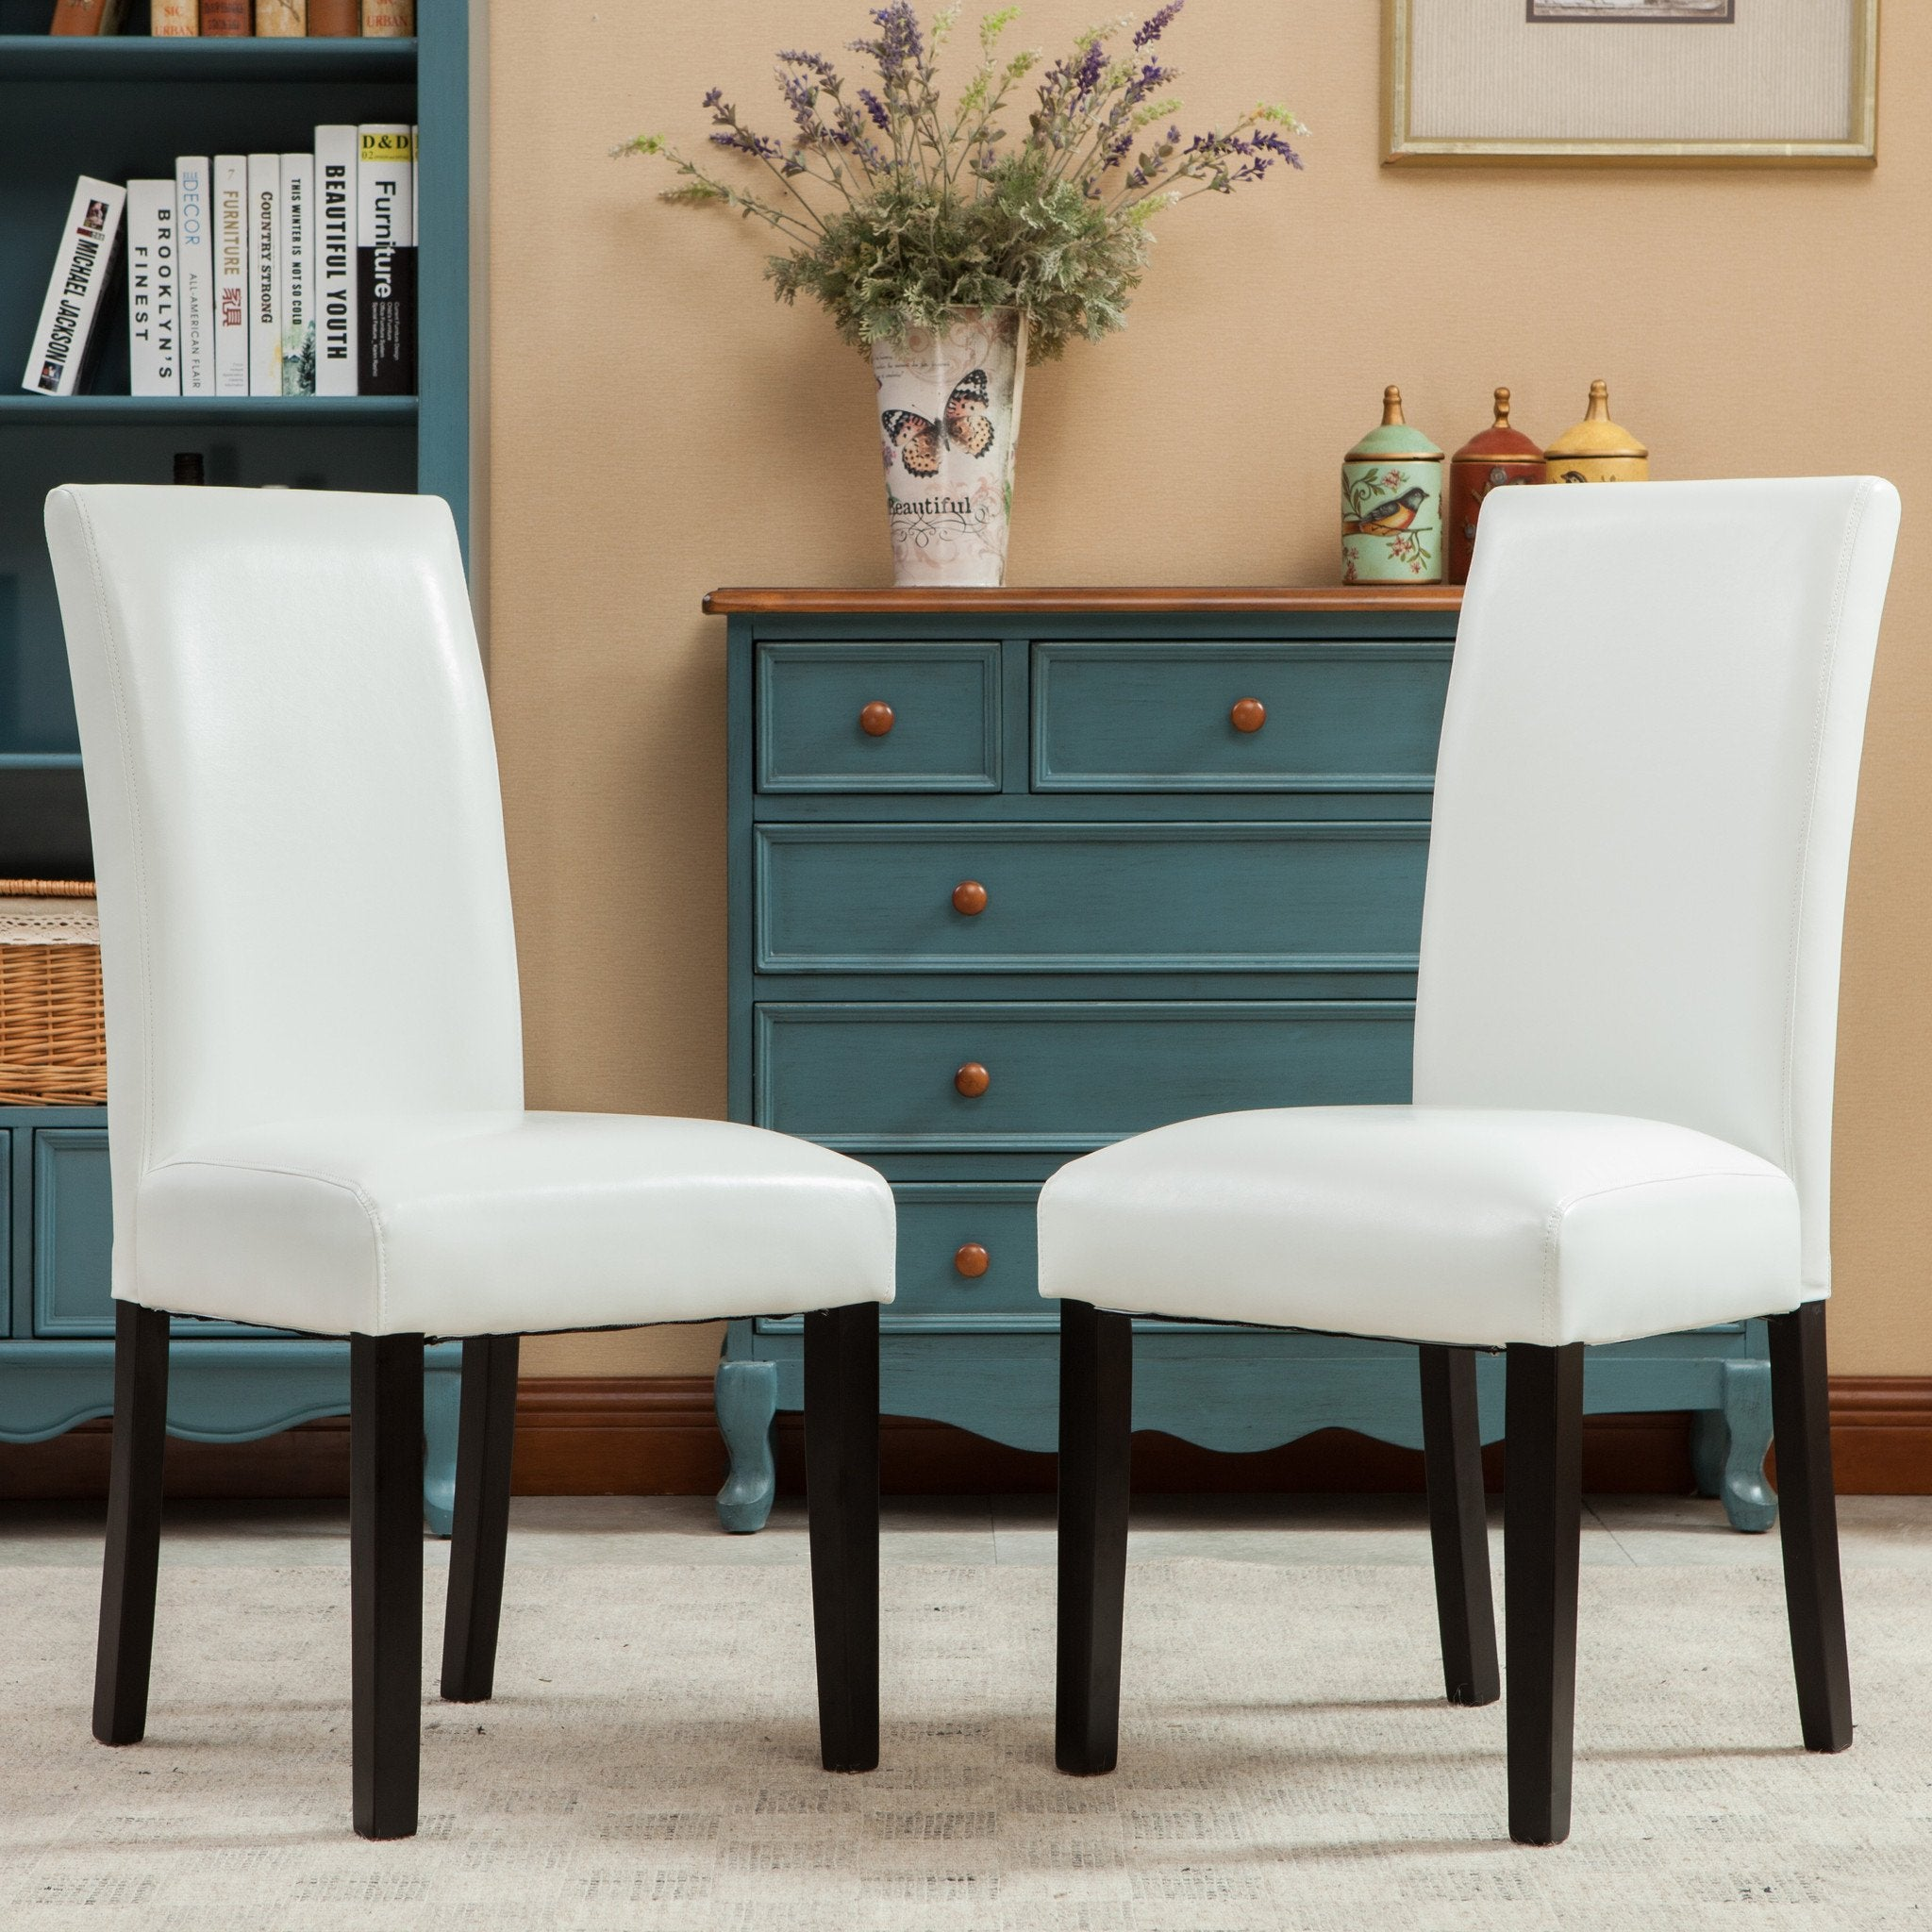 Donatello White Urban Style Solid Wood Leatherette Padded Parson Chair, Set of 2